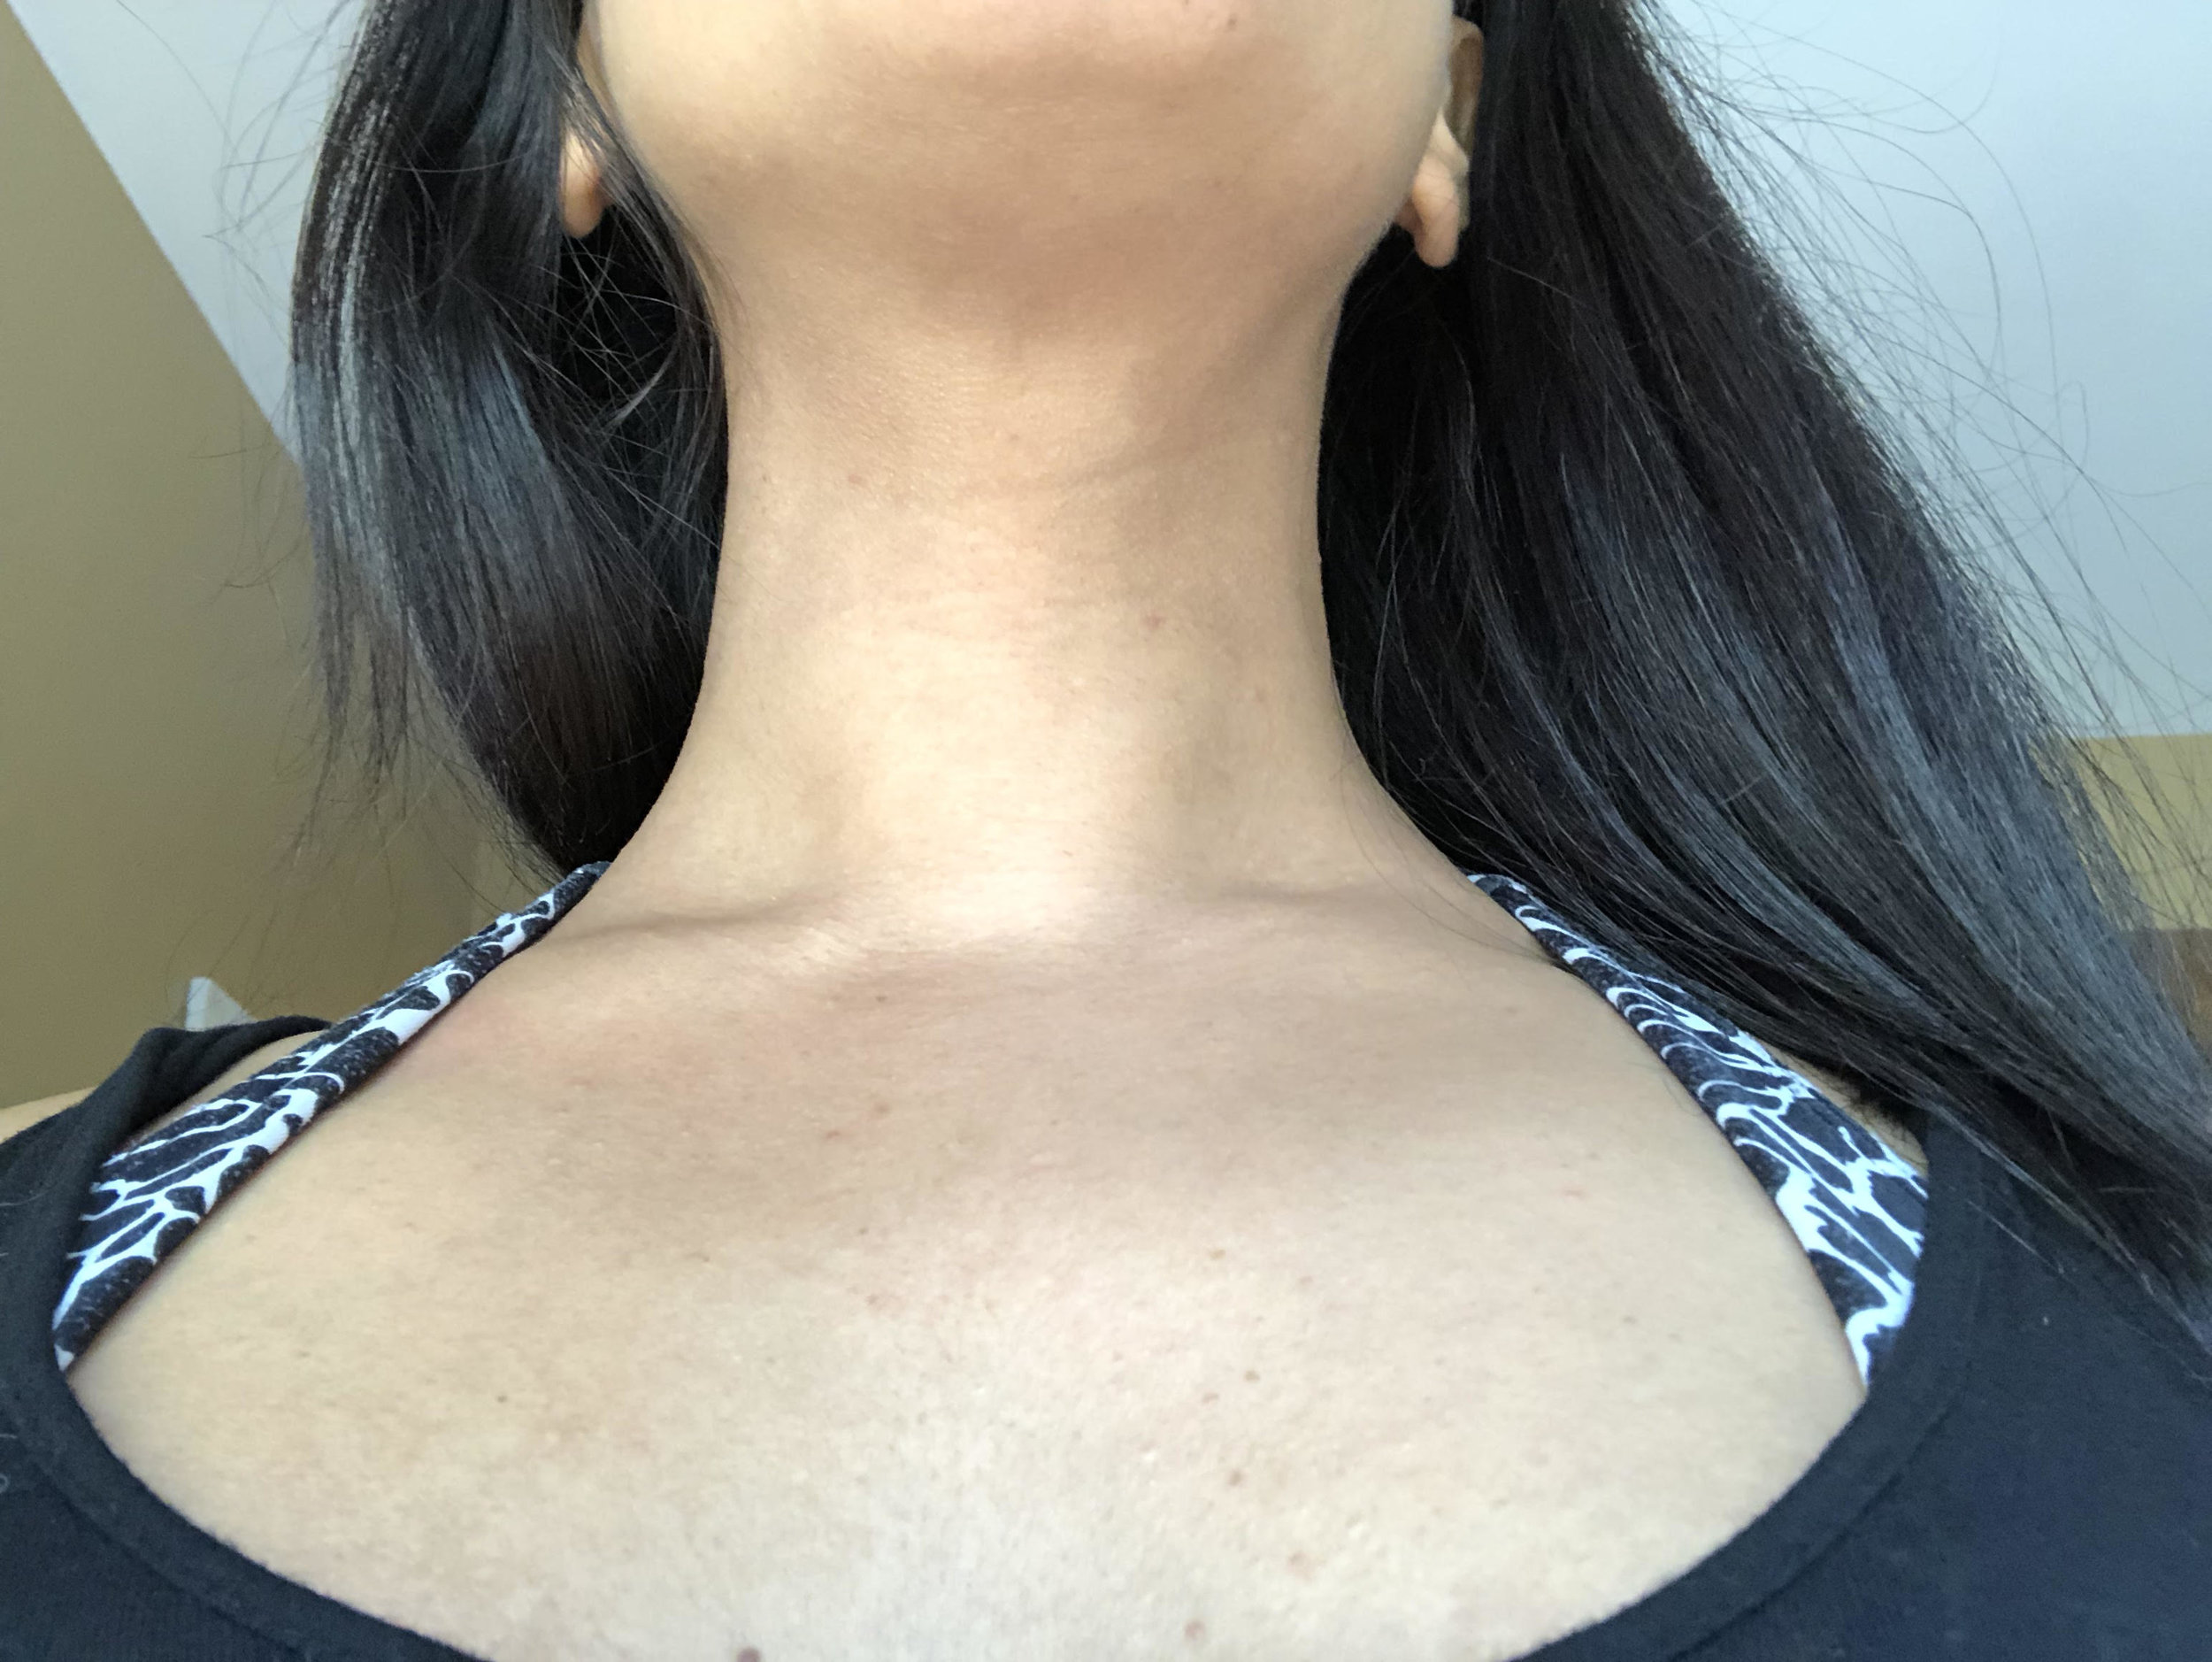 5 weeks after surgery: The continued local cryotherapy treatments have helped heal Jade's neck and chest area.